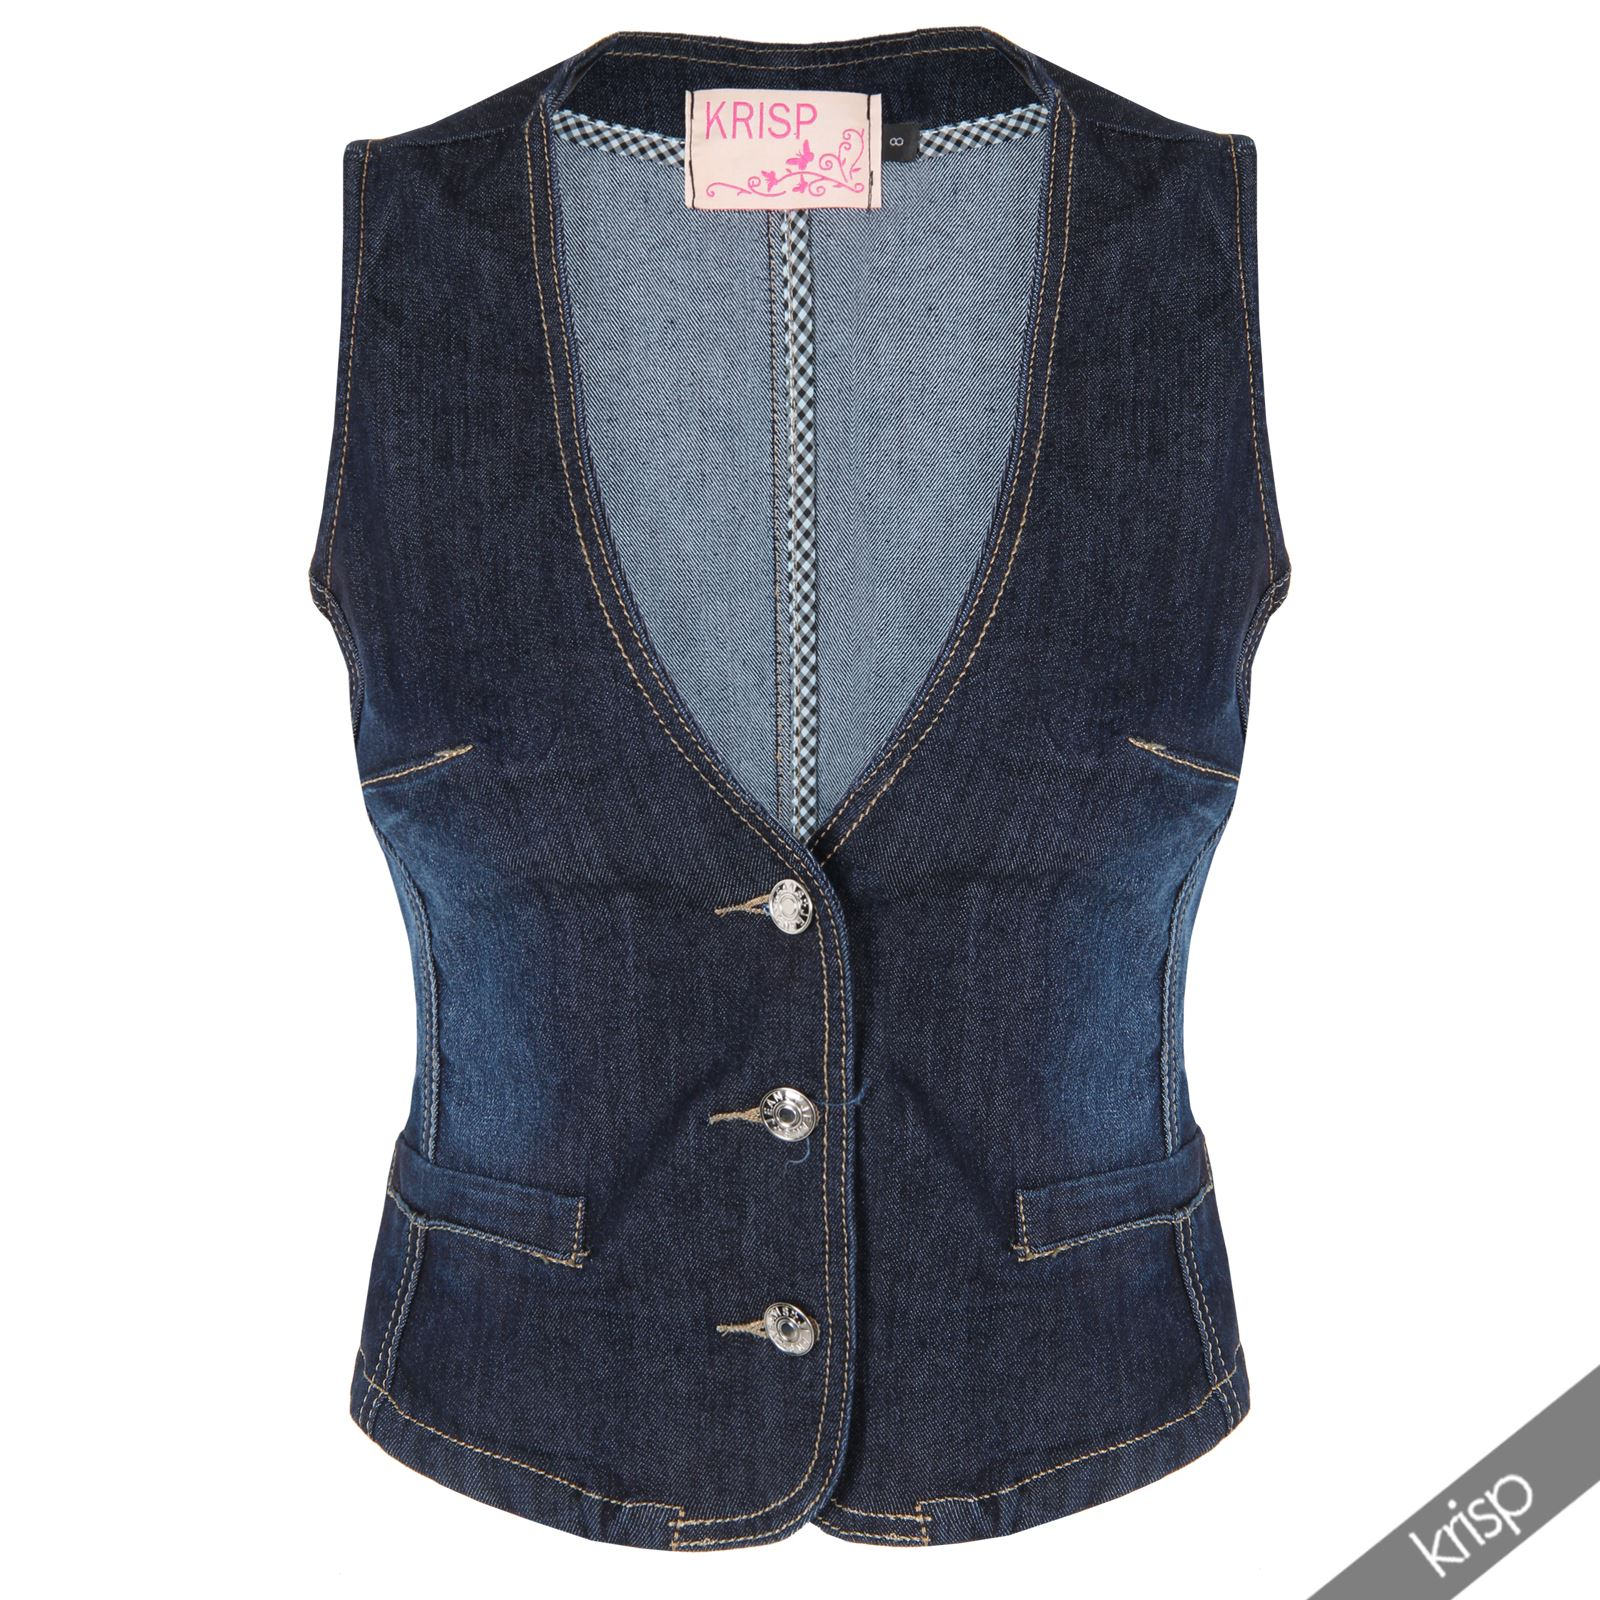 Create an androgynous causal look with this women's charcoal ponte waistcoat. With a longline design and no fastenings, this sleeveless waistcoat is the perfect finishing touch for your smart/causal looks.